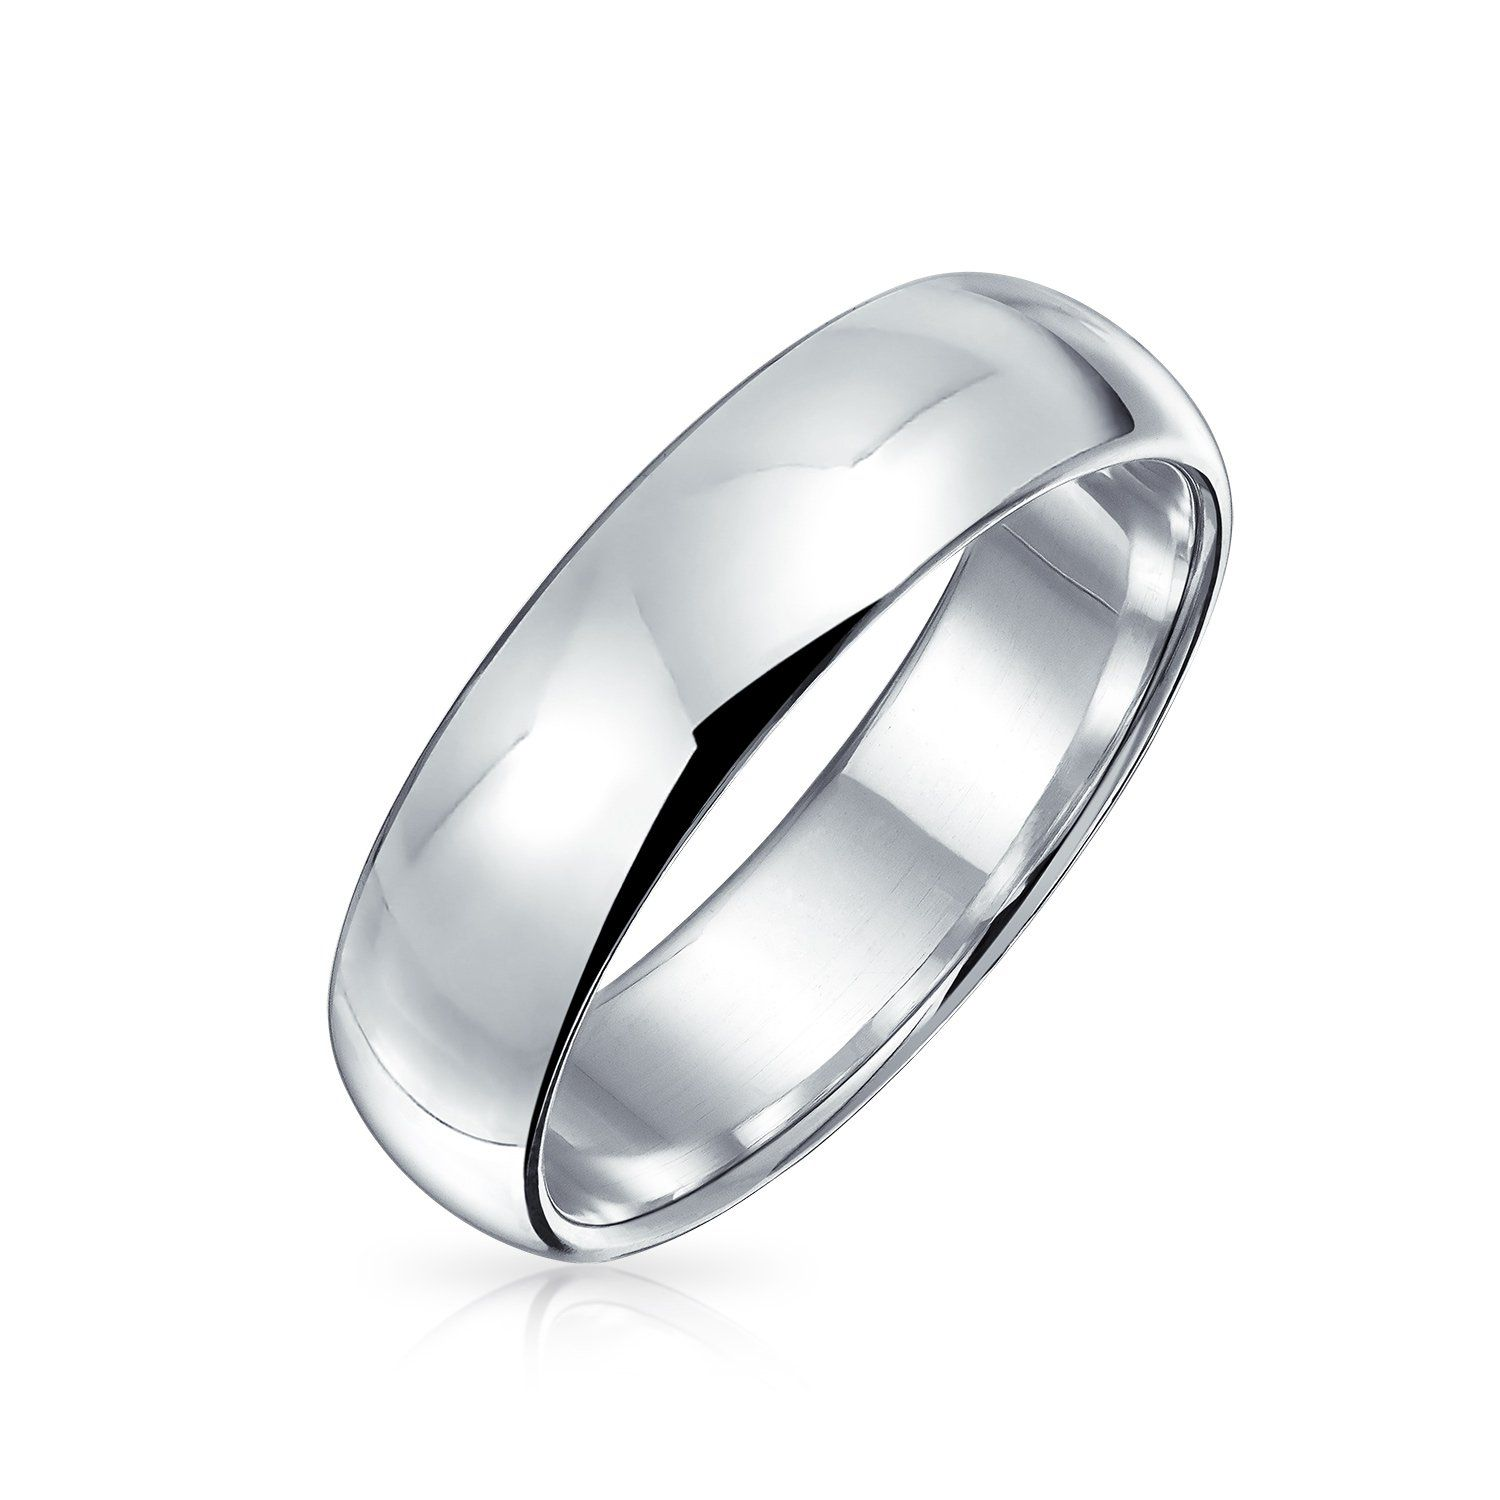 Plain Simple 925 Sterling Silver Dome Couples Wedding Band Ring